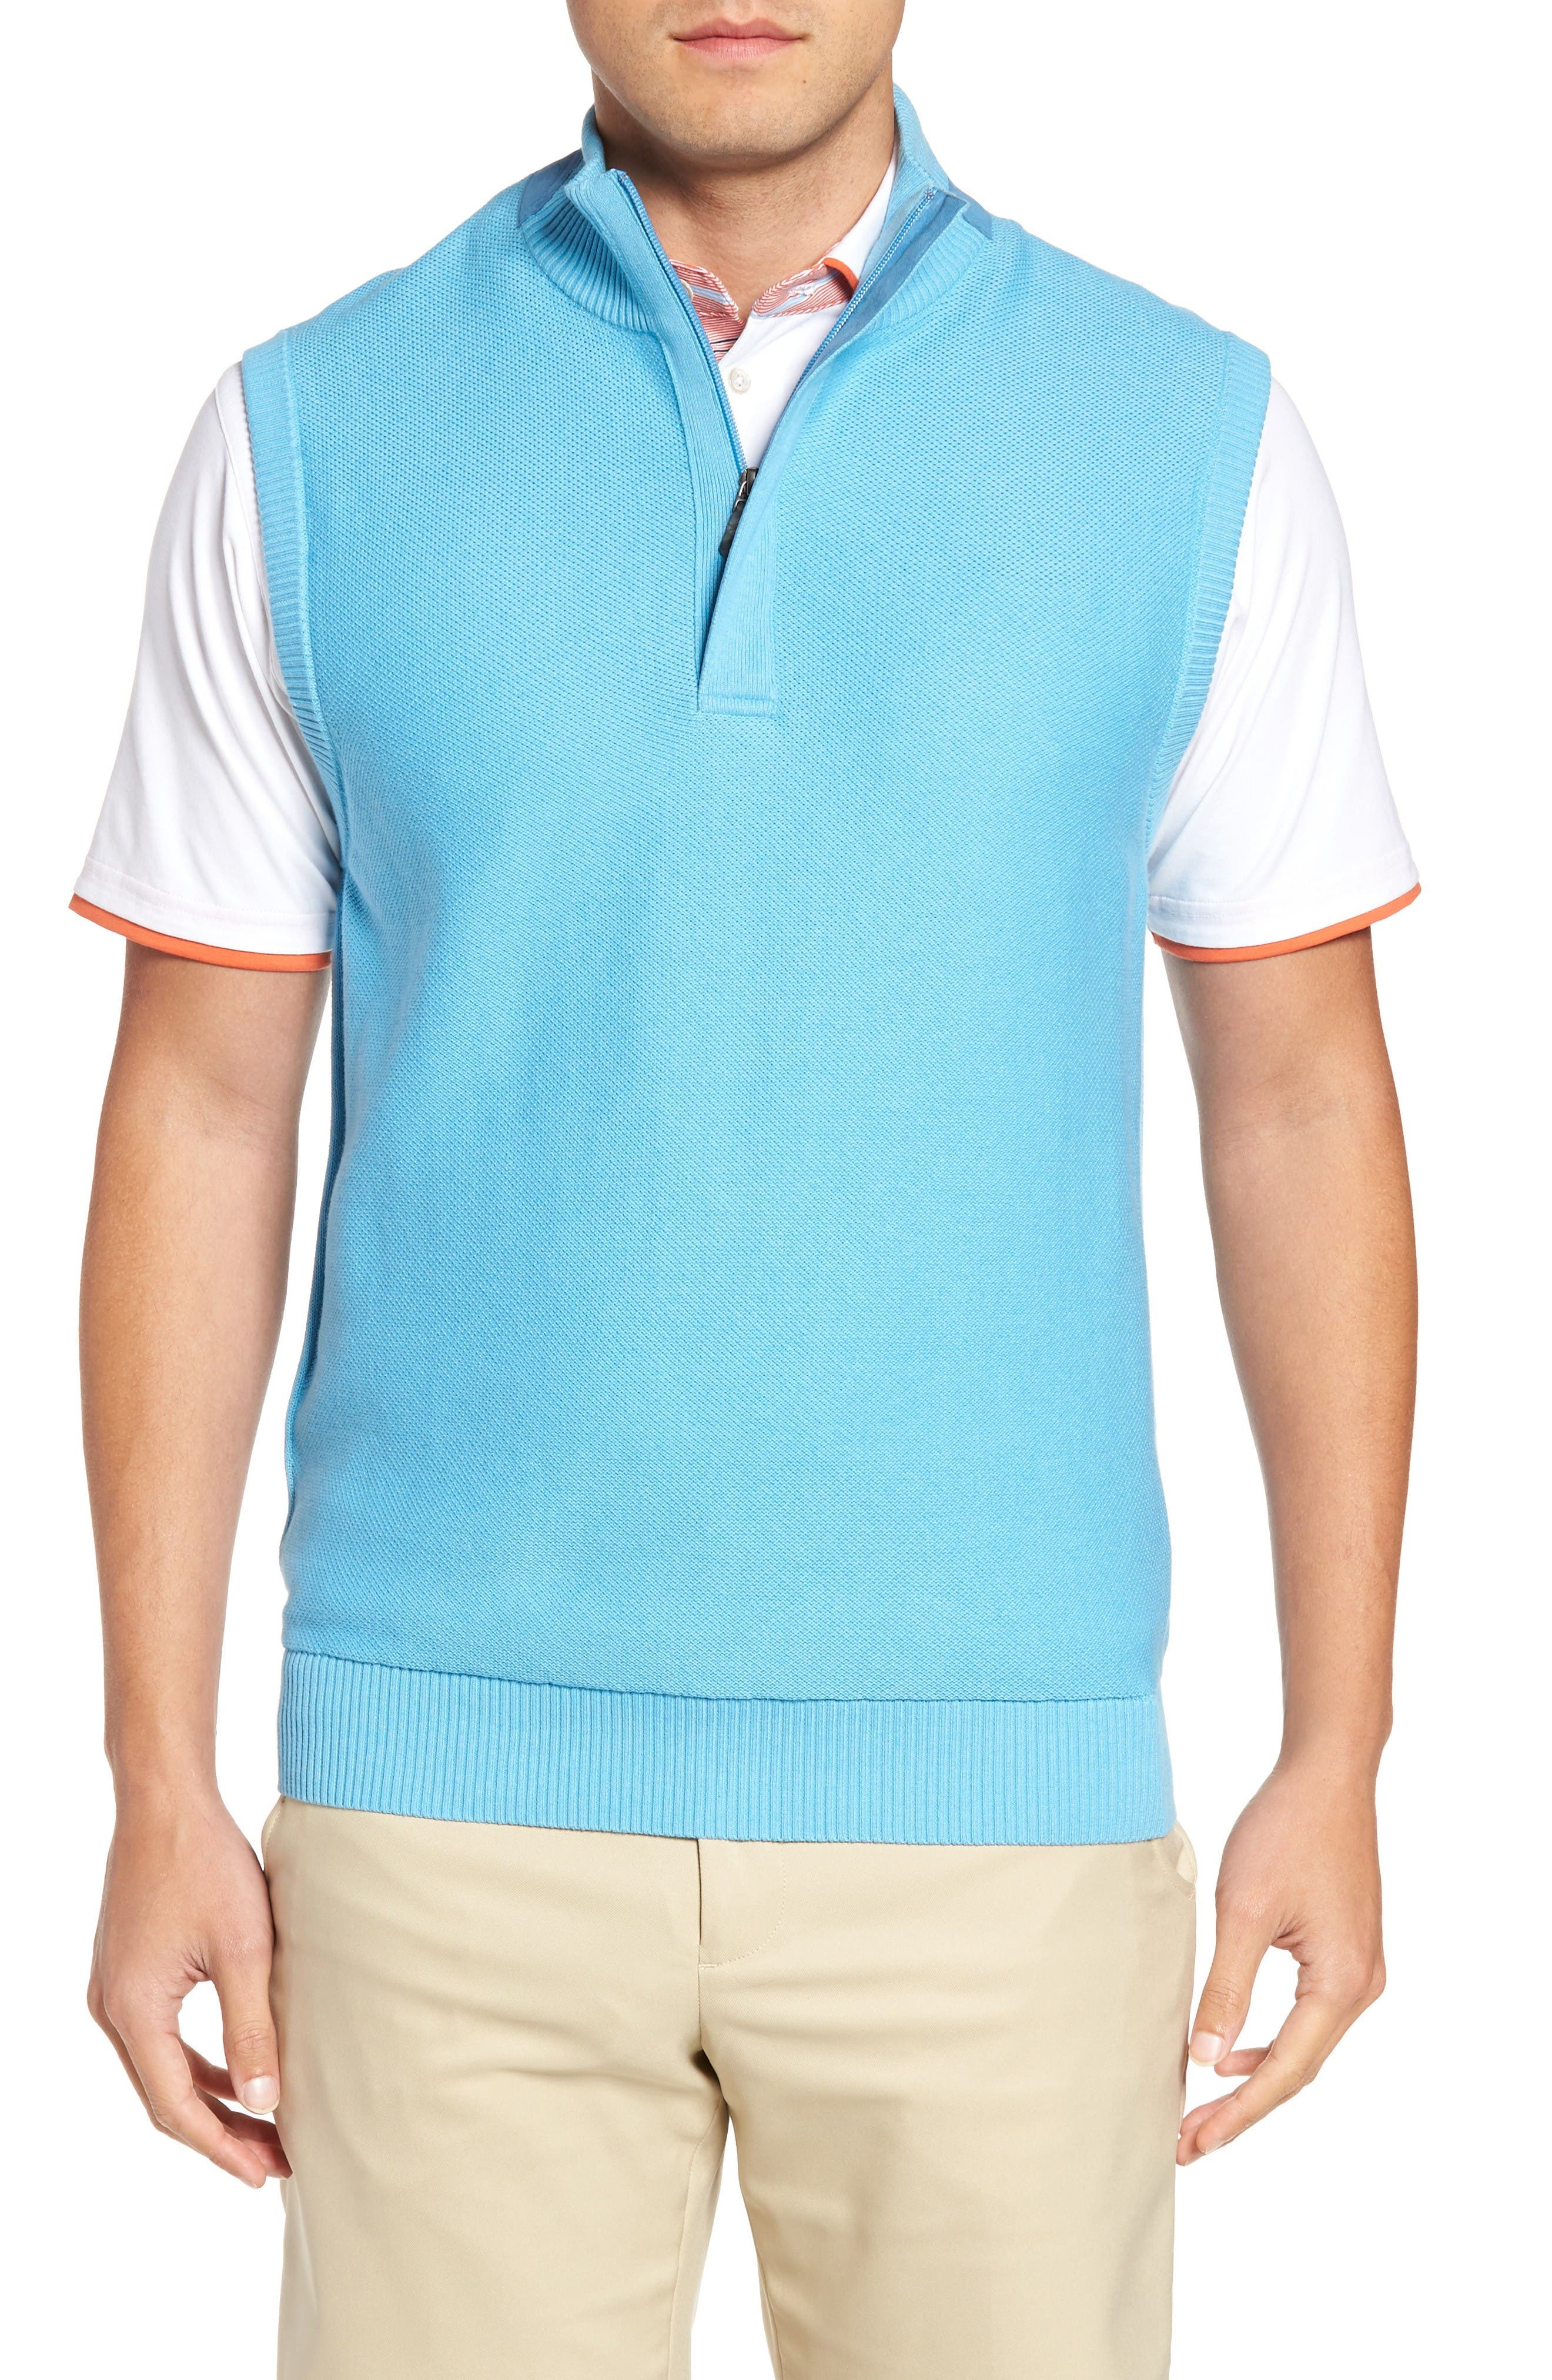 Alternate Image 1 Selected - Bobby Jones Piqué Jersey Quarter Zip Golf Vest